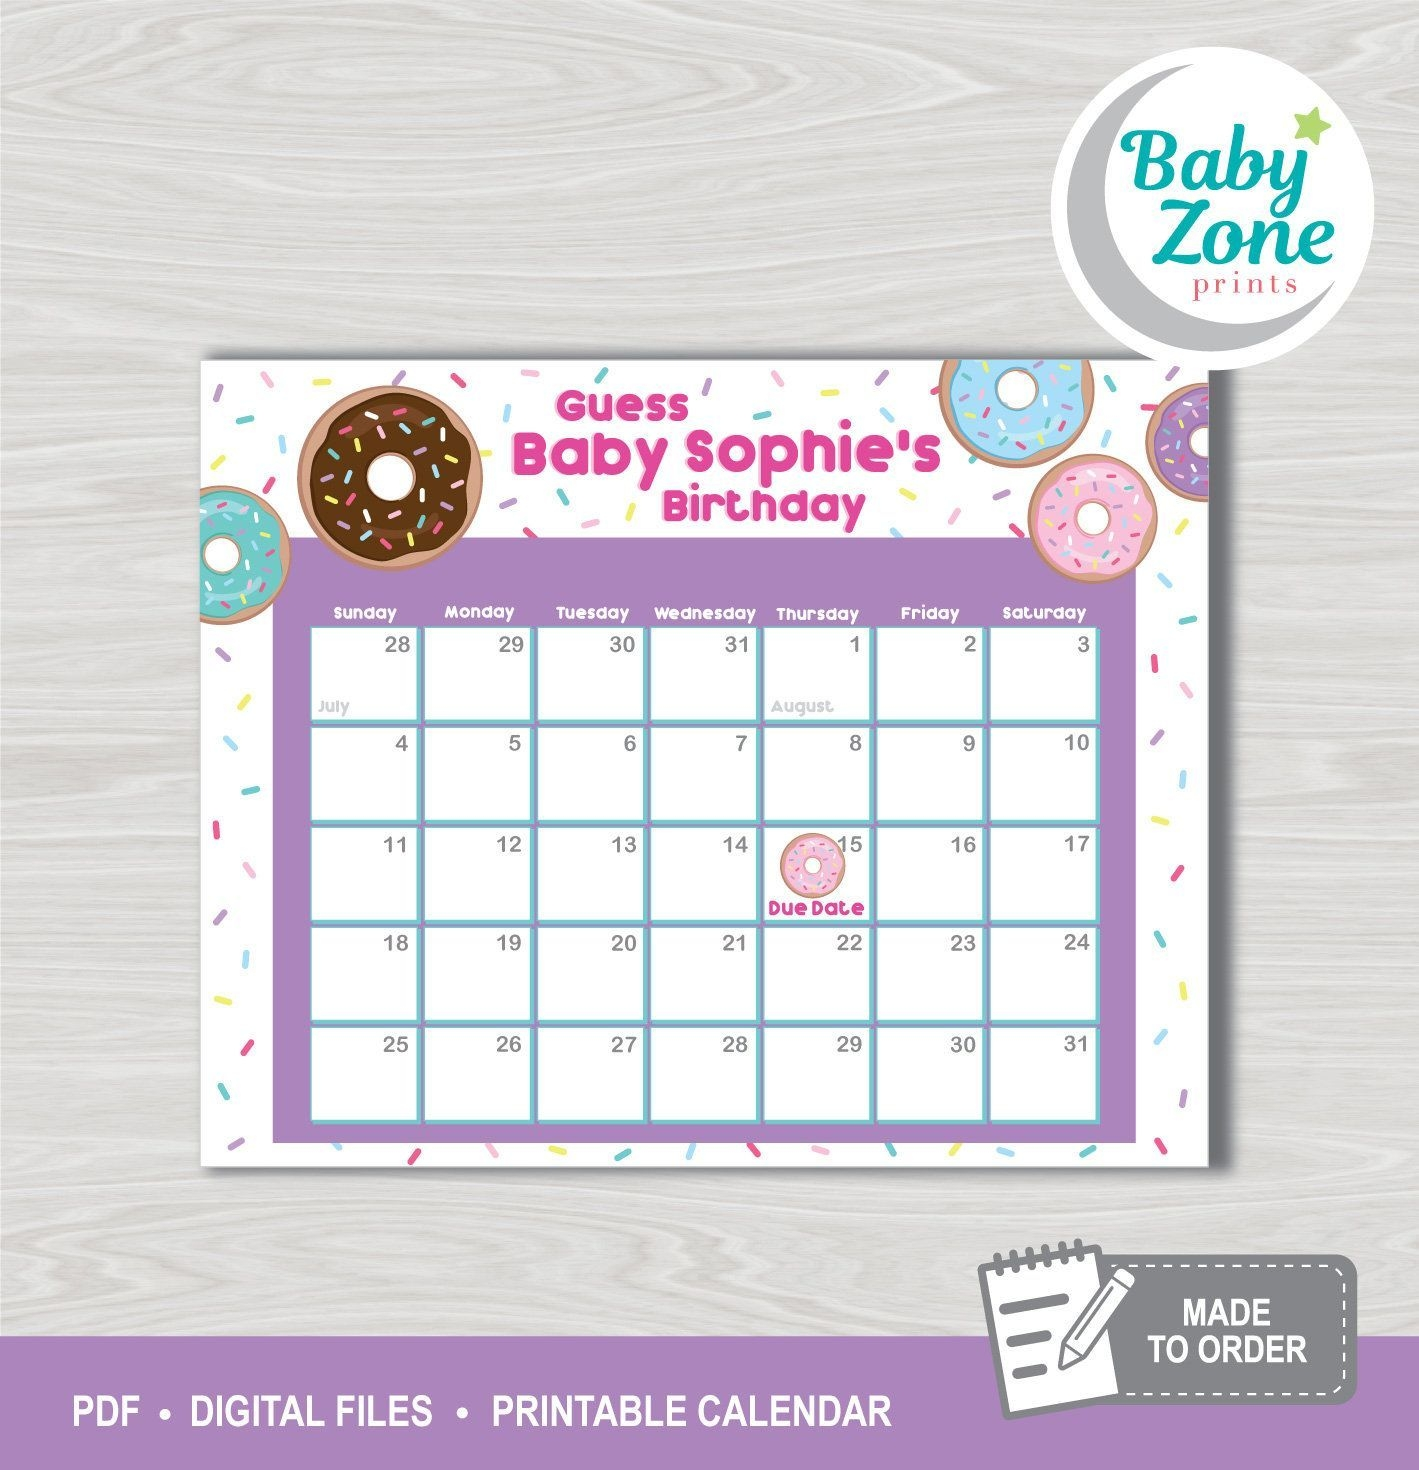 Donuts Baby Due Date Printable Prediction Calendar Guess The